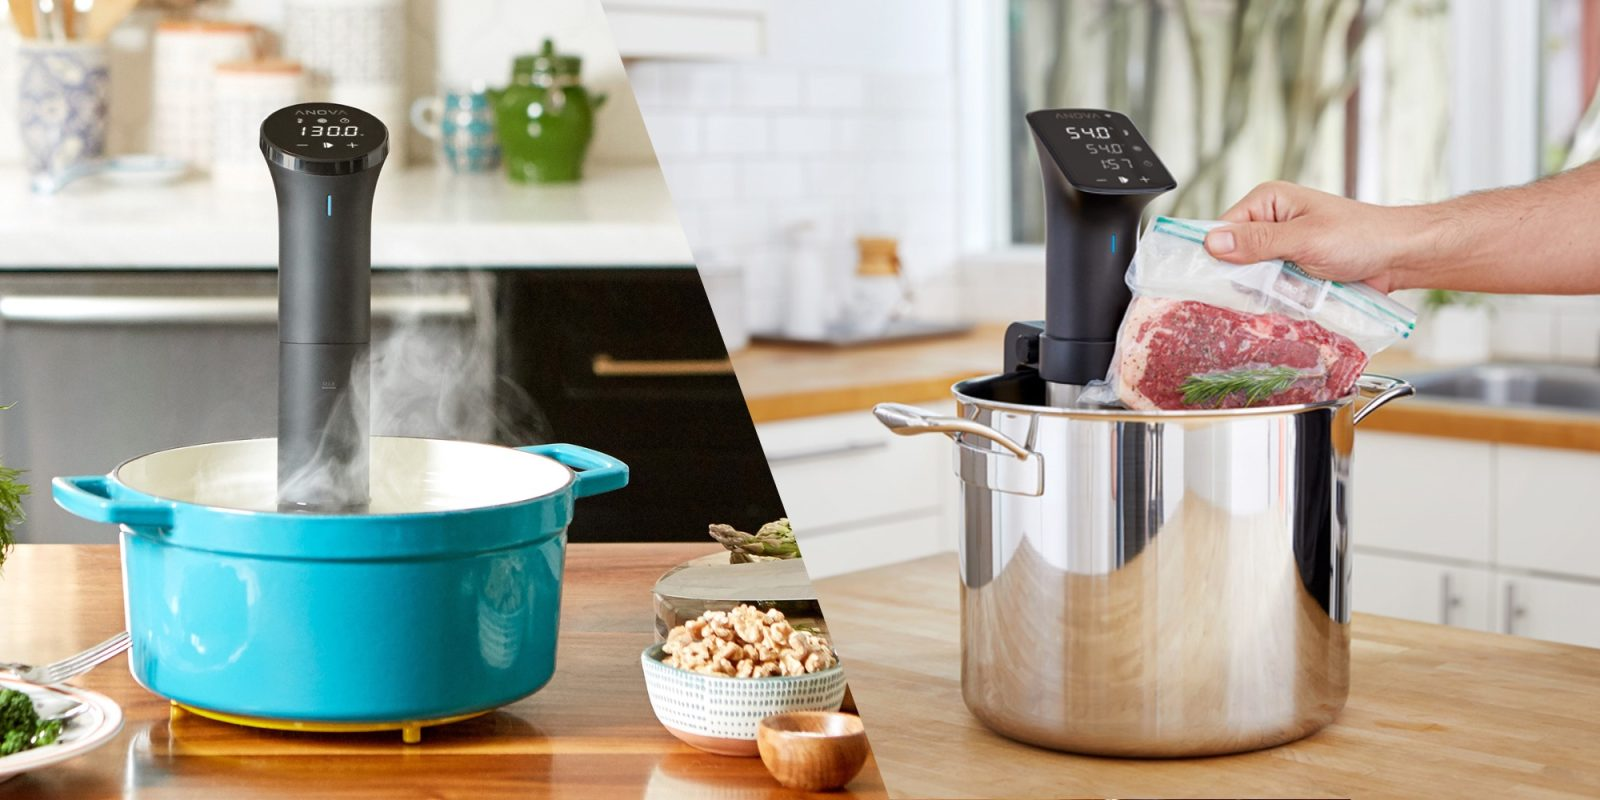 Anova Pro Sous Vide Cooker falls to new all-time low at $299 ($100 off), more